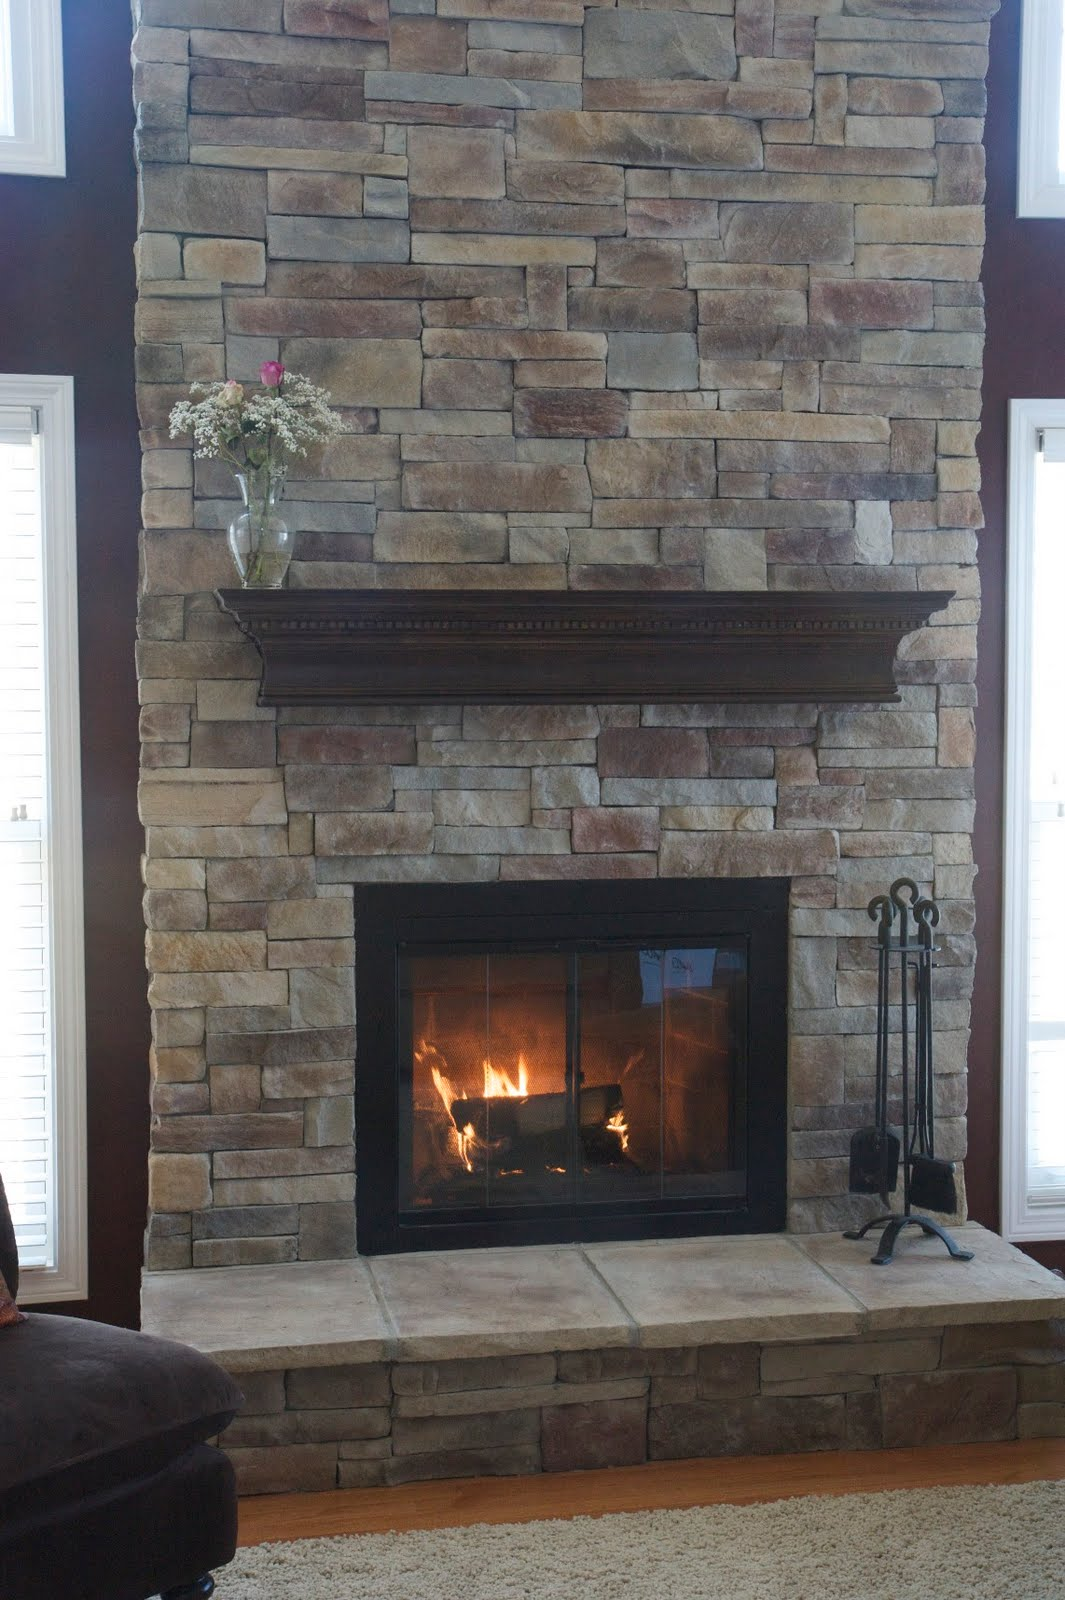 North Star Stone- Stone Fireplaces & Stone Exteriors: Did ...